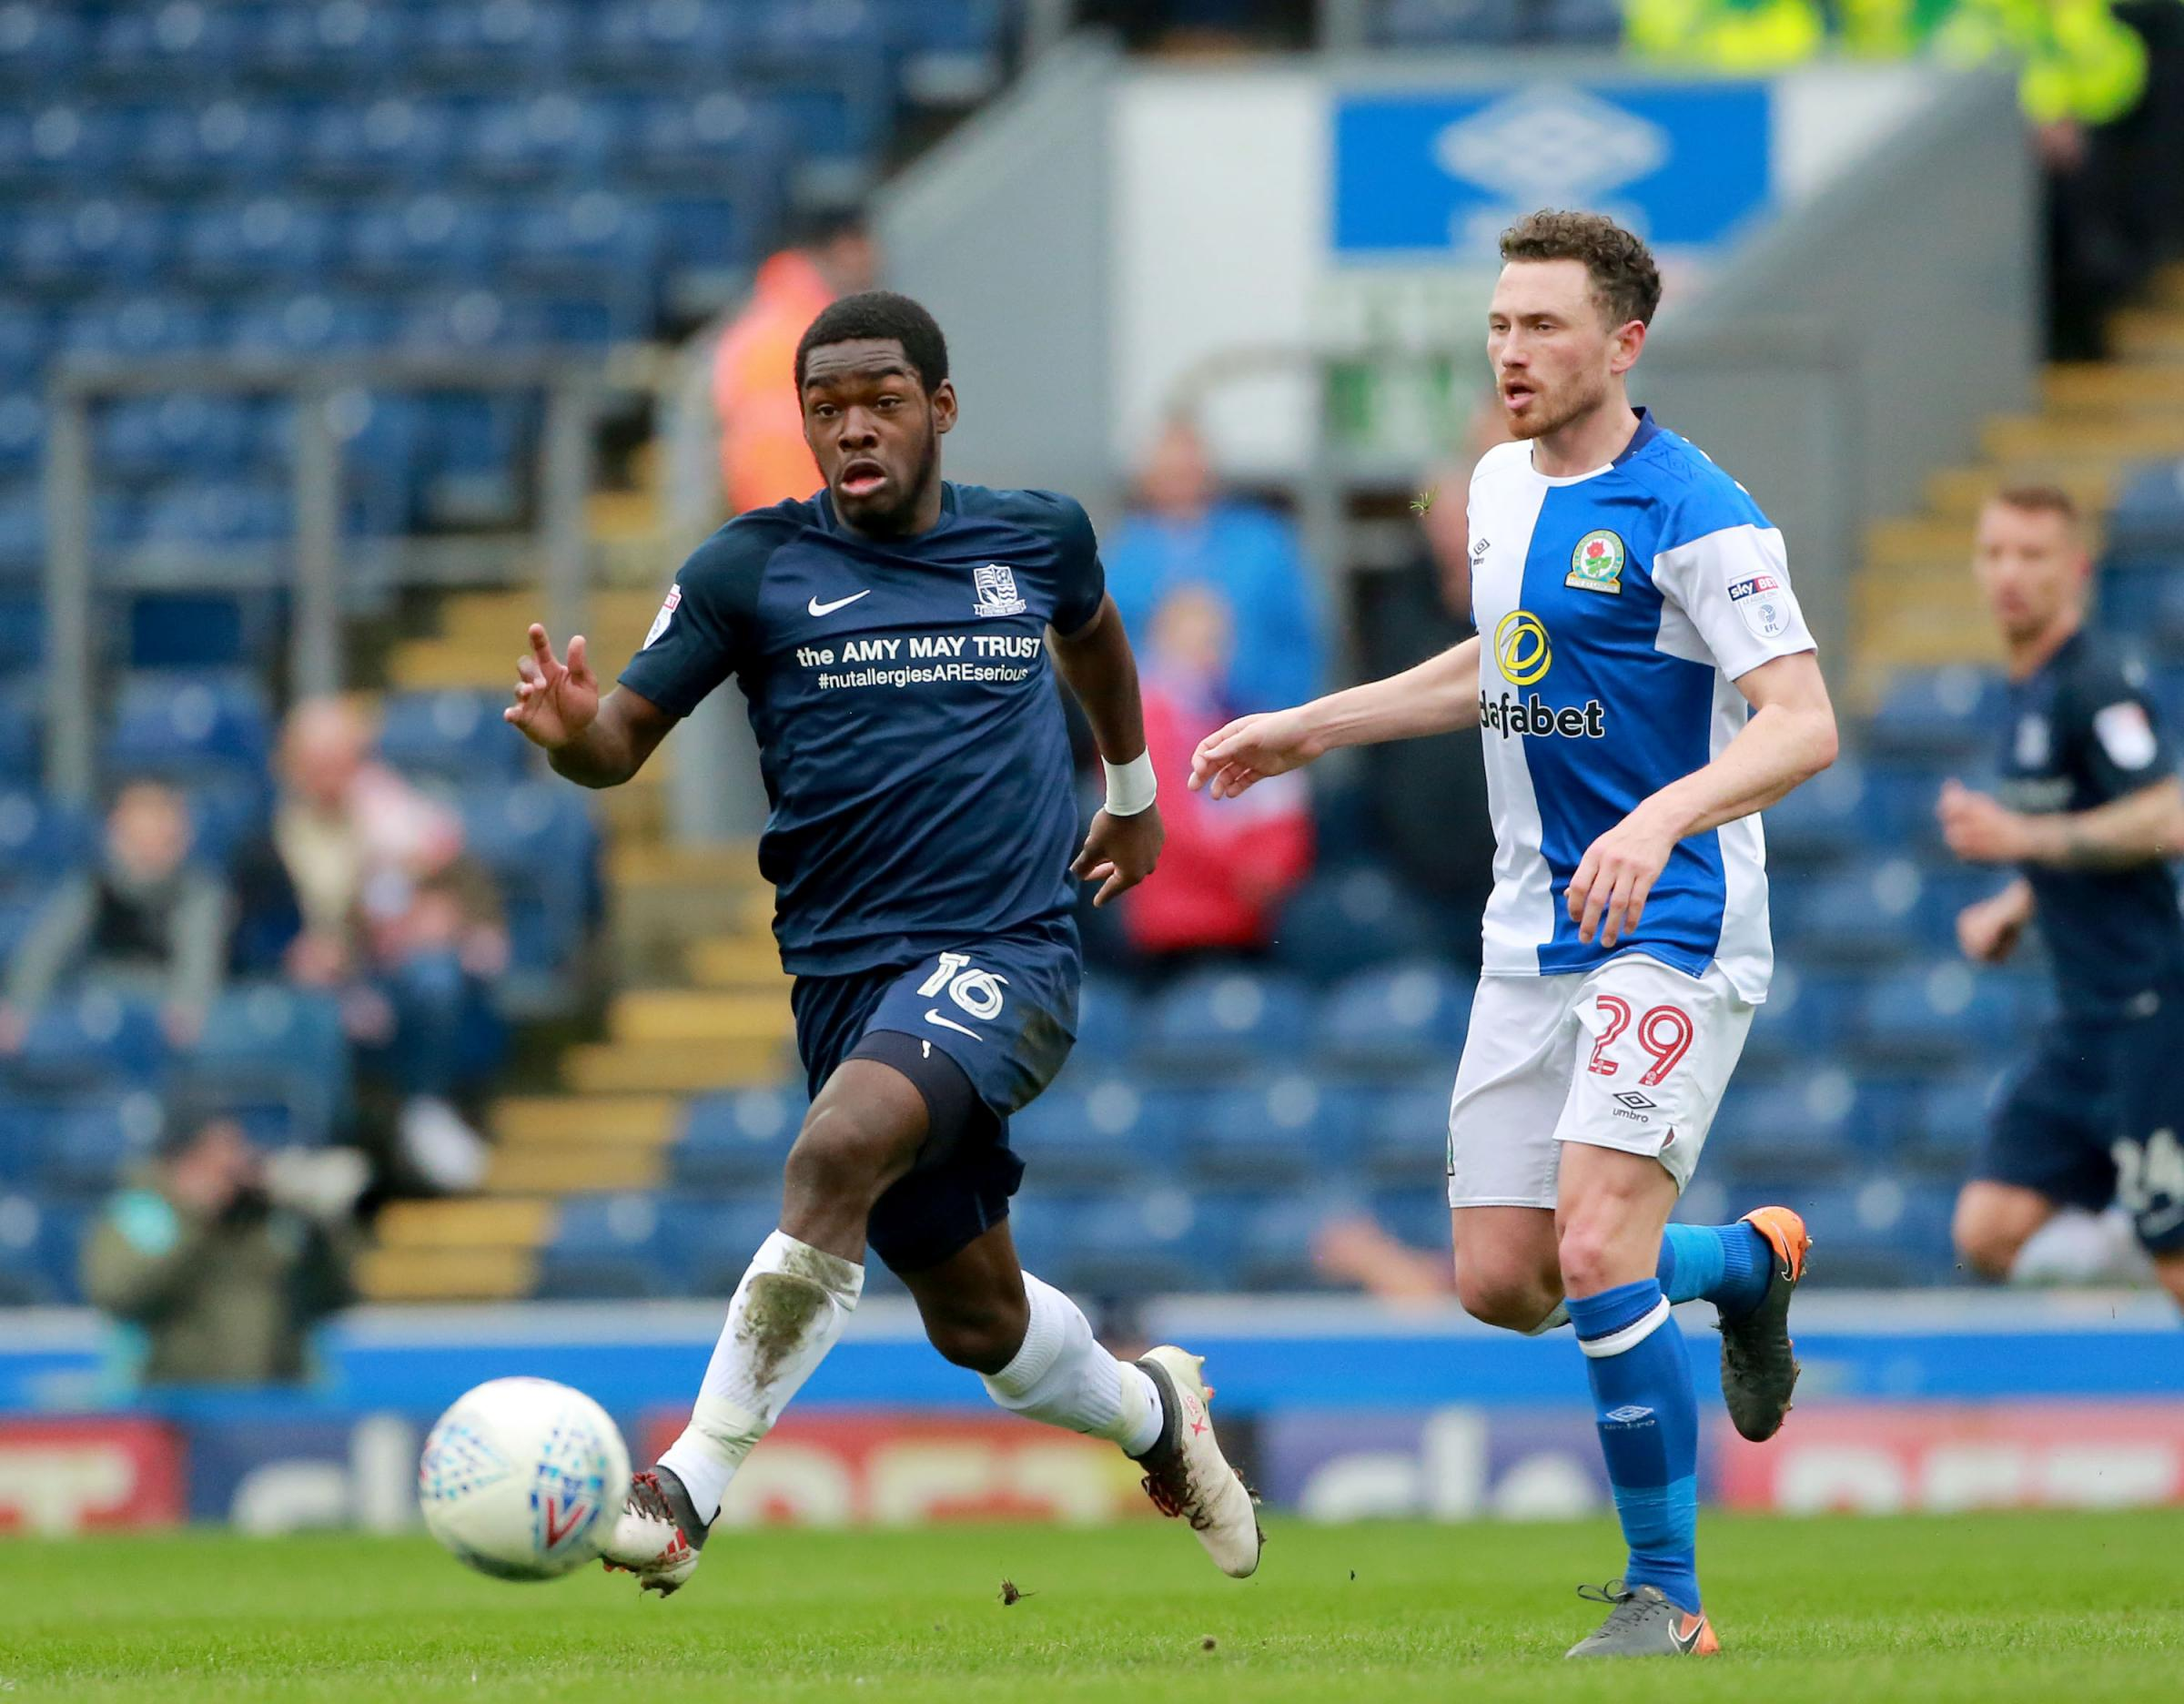 Wanting his best weekend yet - Southend United midfielder Dru Yearwood